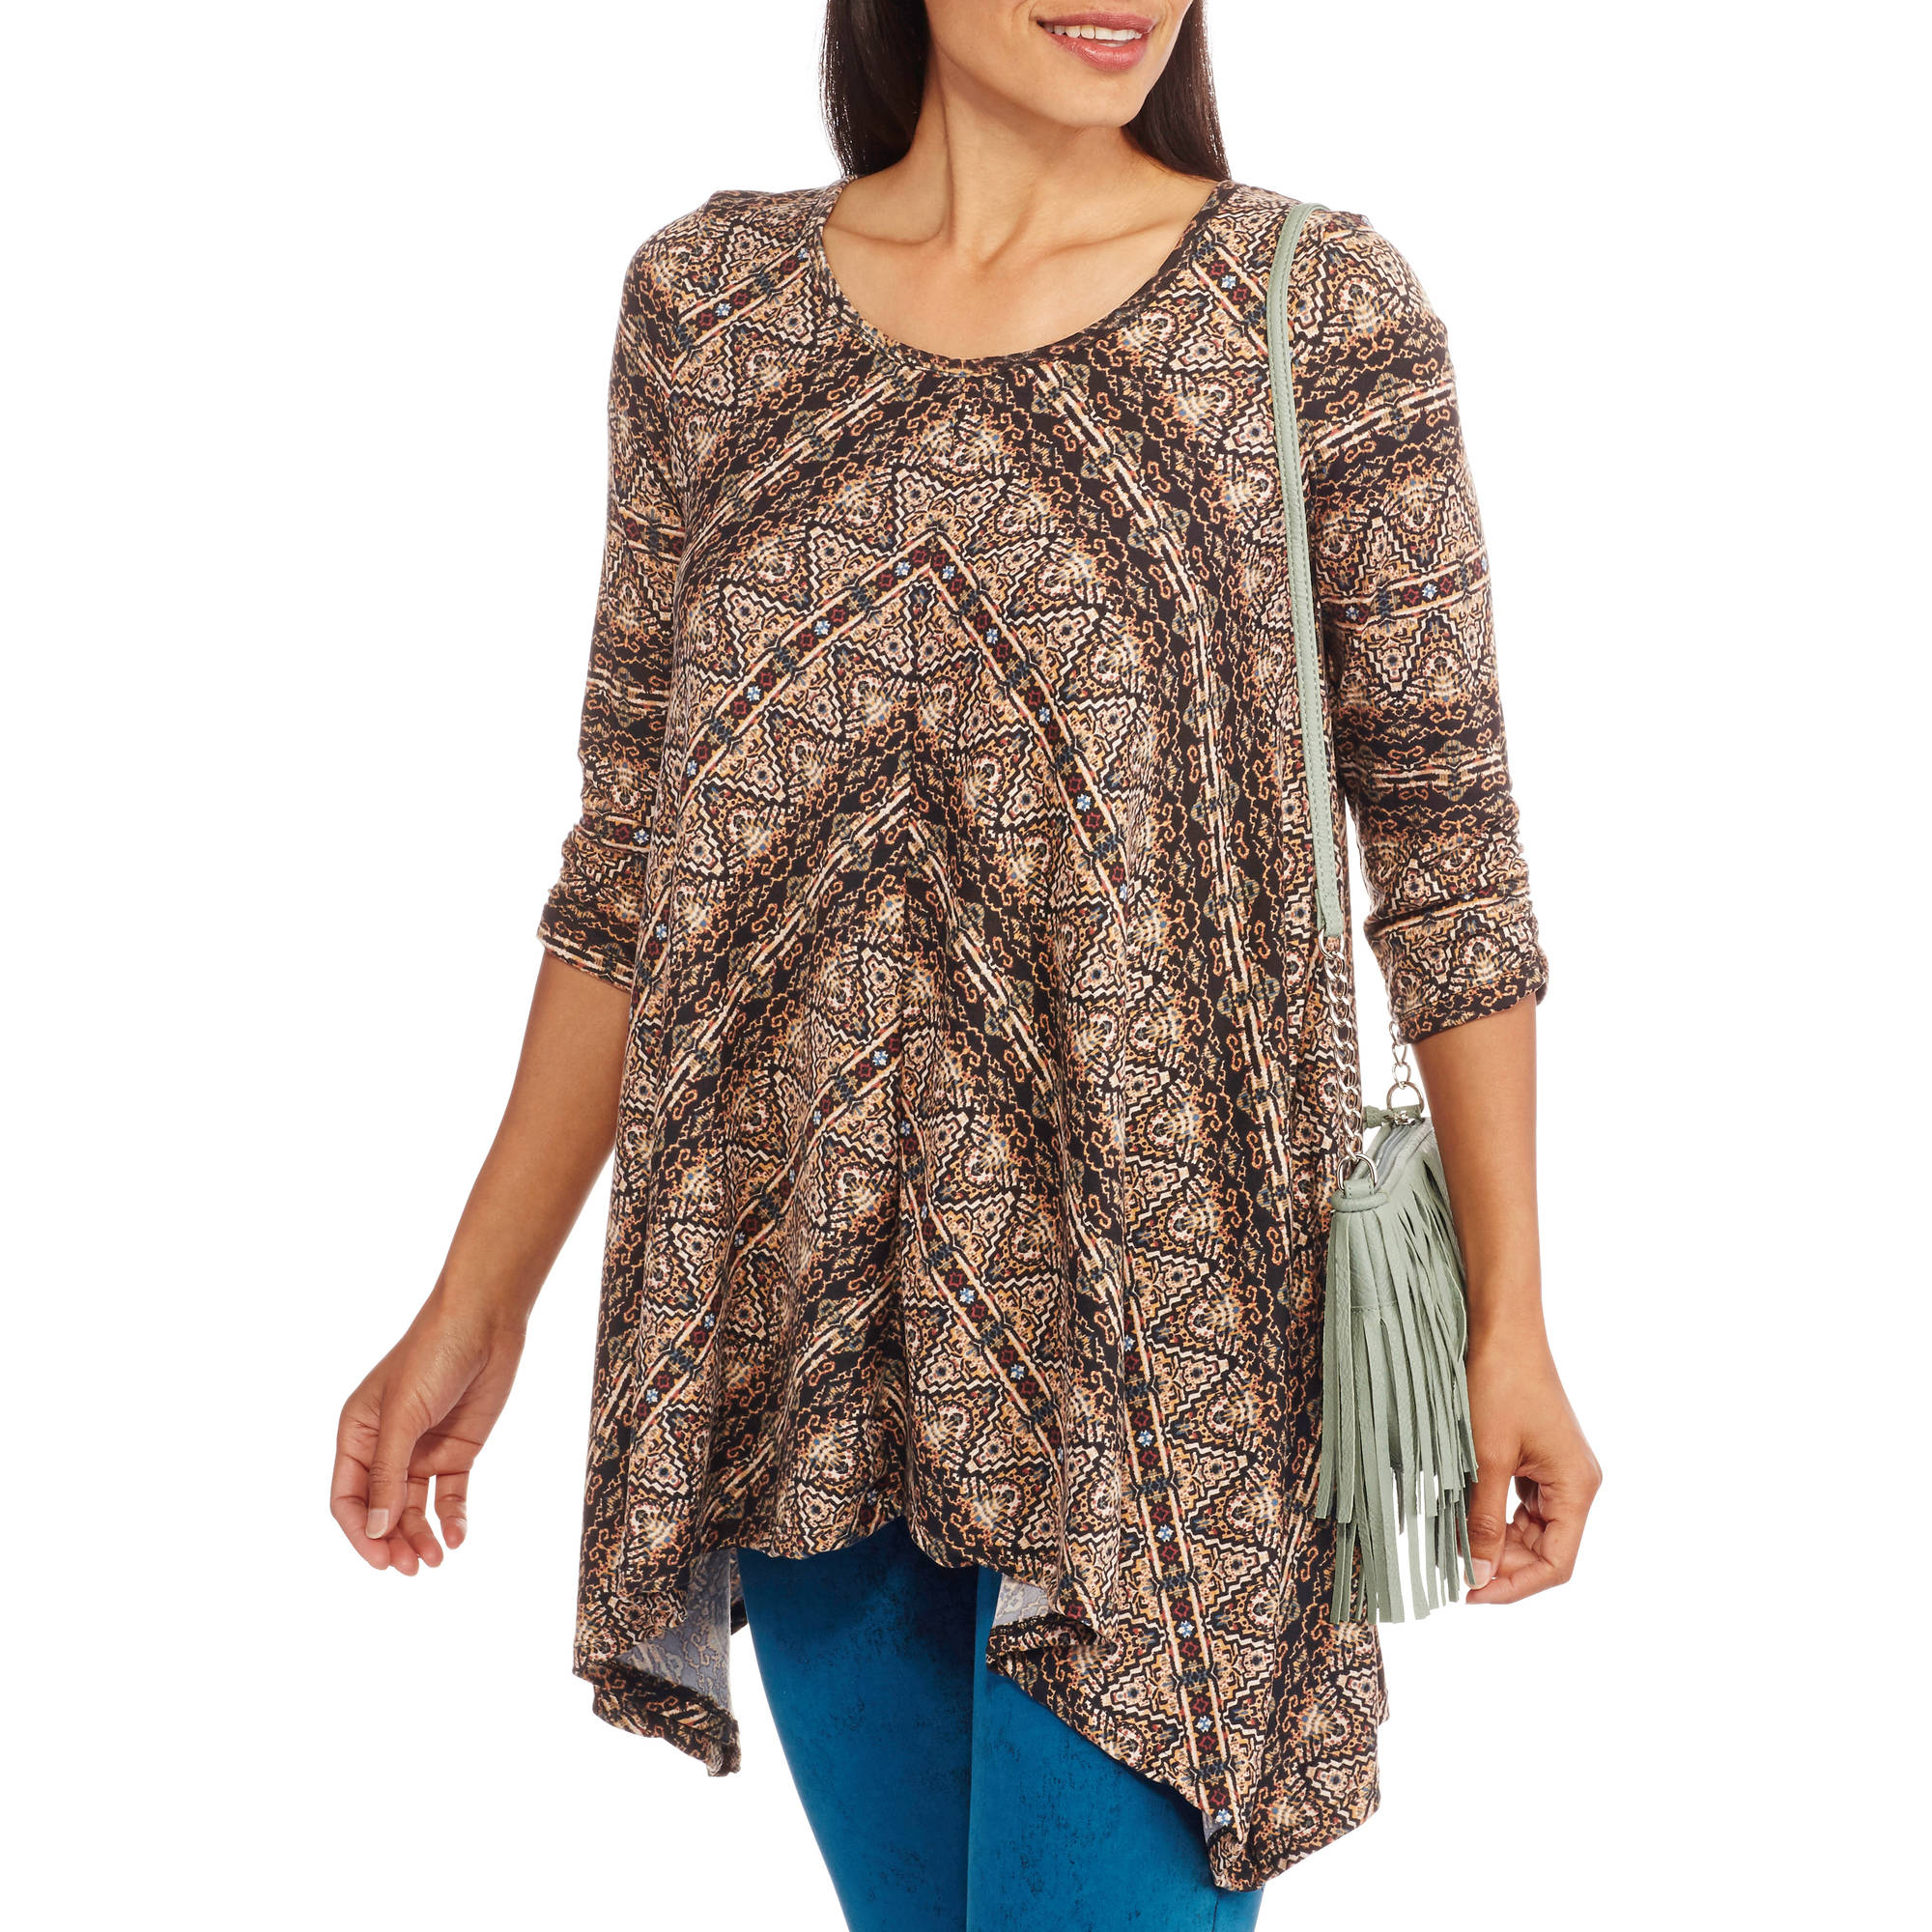 French Laundry Women's Printed Tunic With Sharkbite Hem